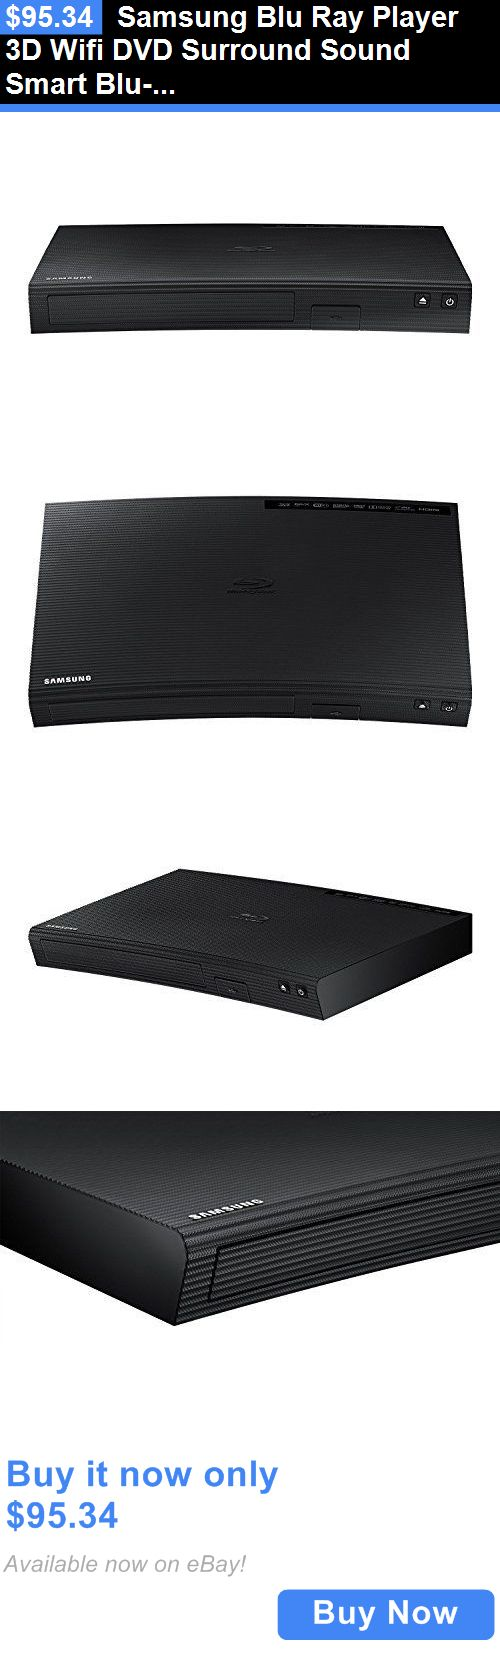 DVD and Blu-ray Players: Samsung Blu Ray Player 3D Wifi Dvd Surround Sound Smart Blu-Ray Refurbished BUY IT NOW ONLY: $95.34